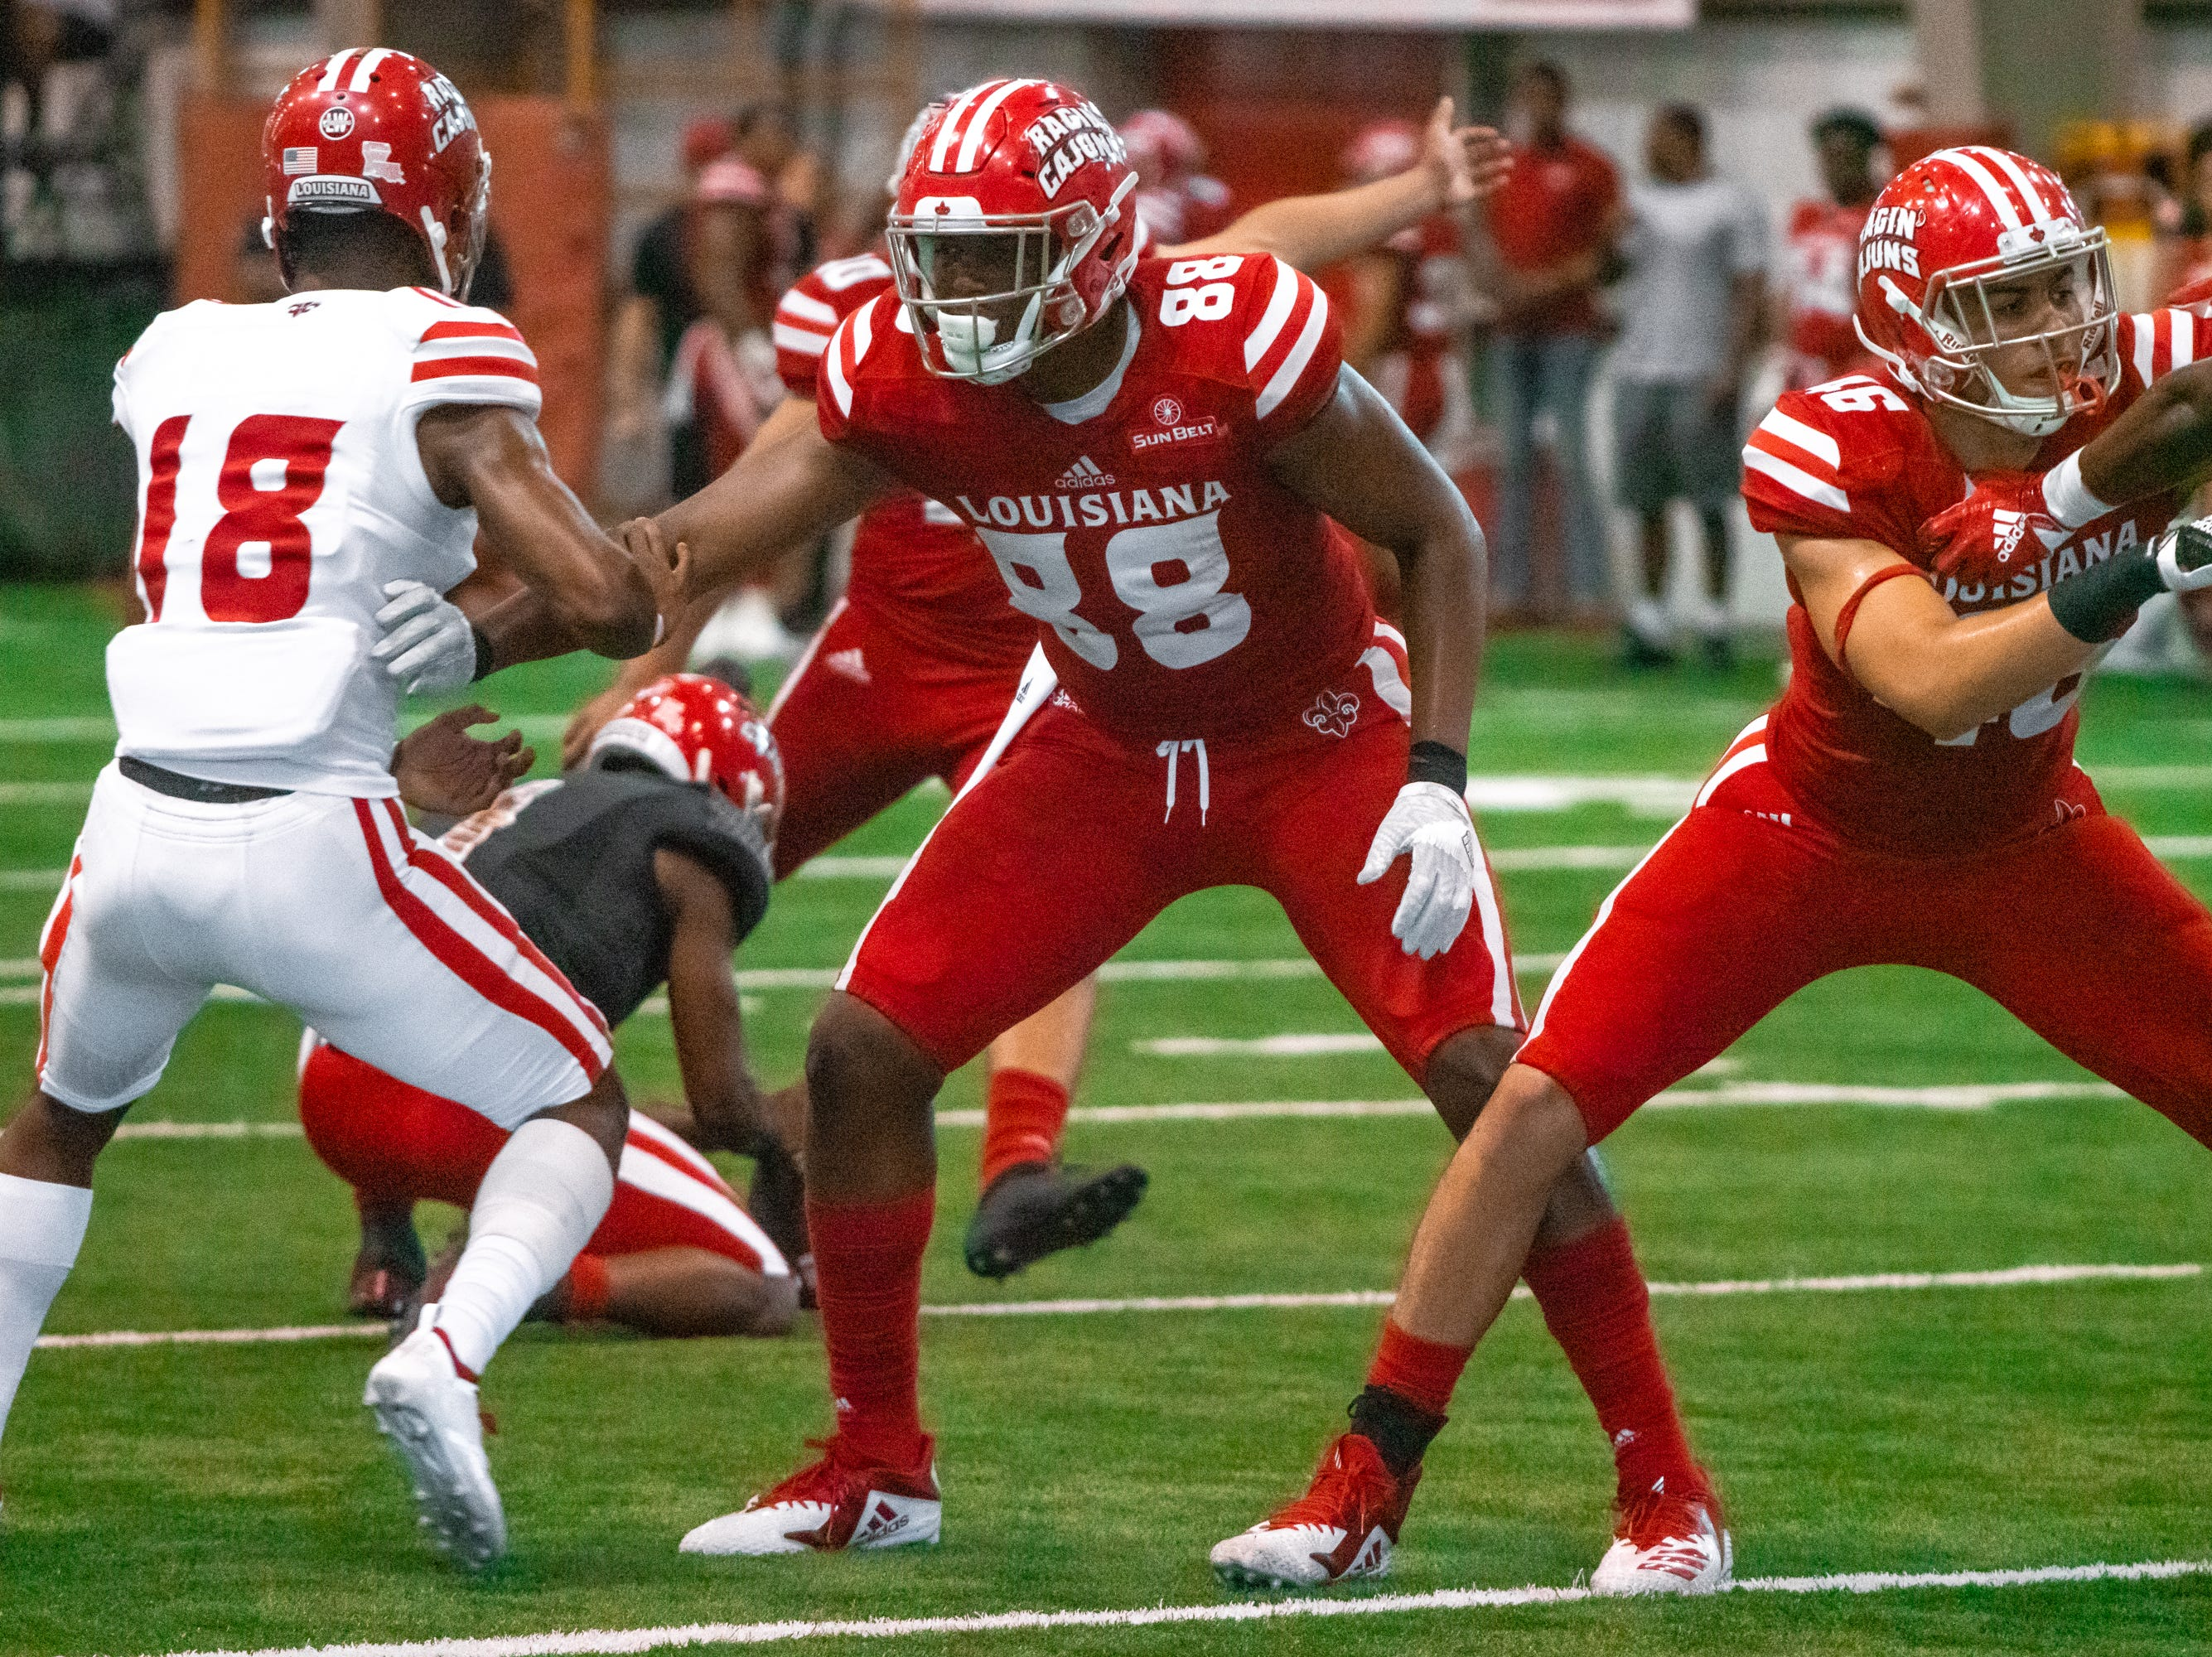 UL's Johnny Lumpkin (88) holds the defense back as the Ragin' Cajuns football team plays their annual Spring football game against one another in the Leon Moncla trainig facility on April 13, 2019.